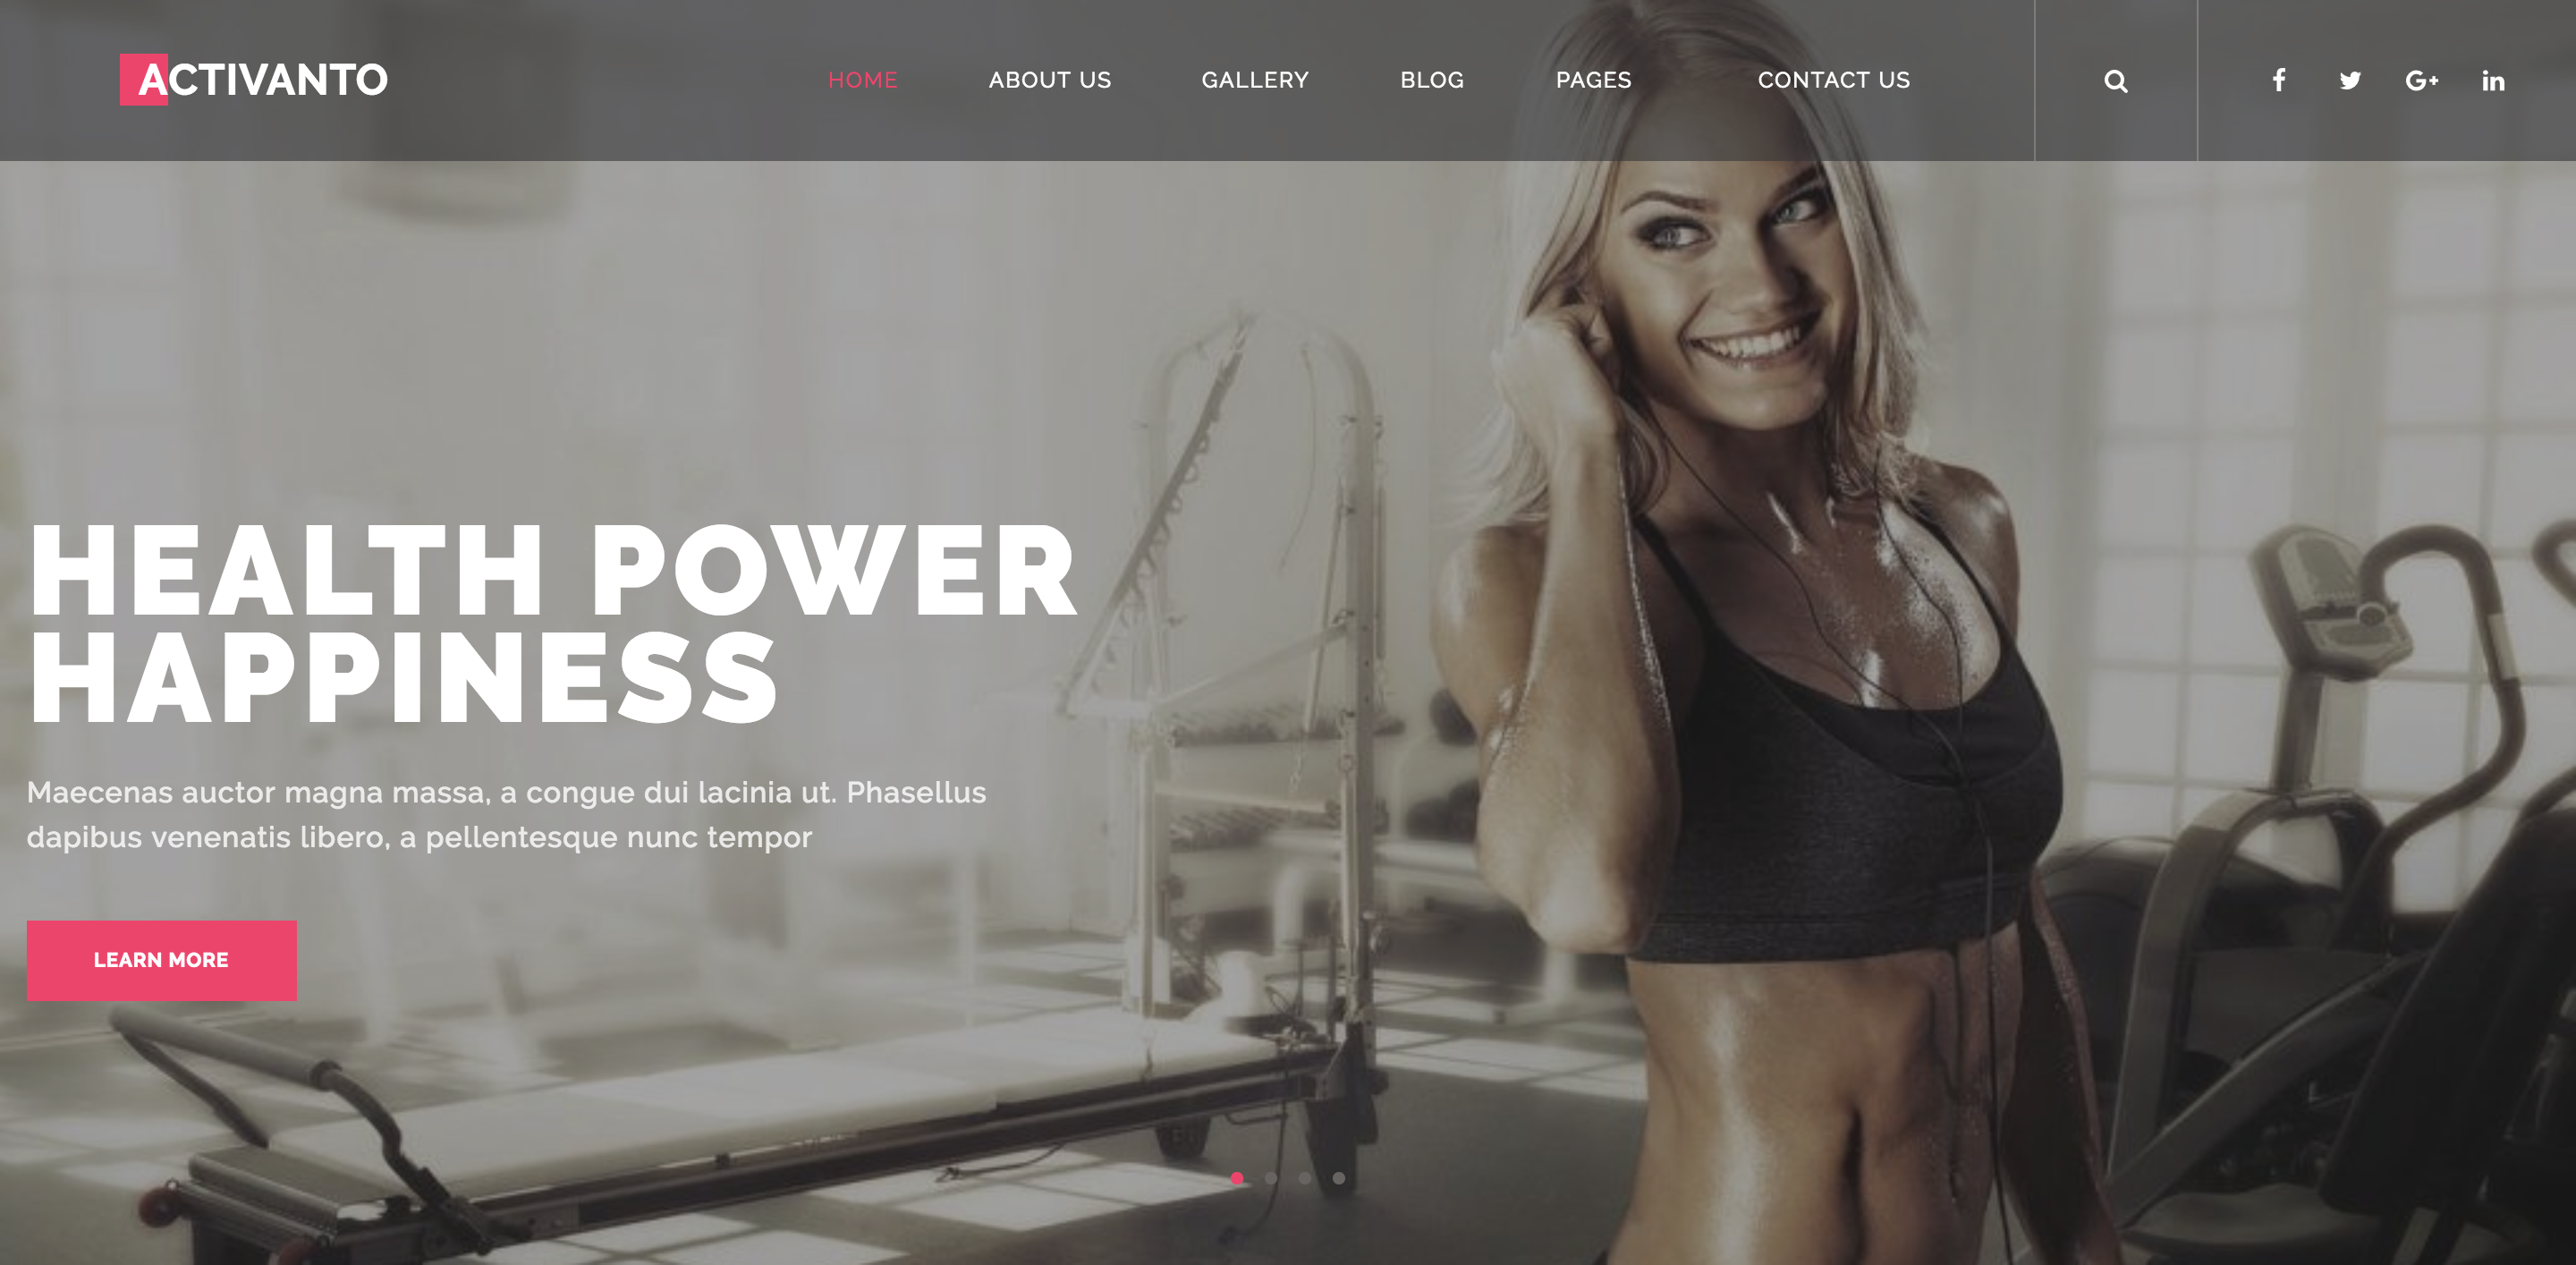 Gym | Fitness | Sport Club WordPress Activanto.png